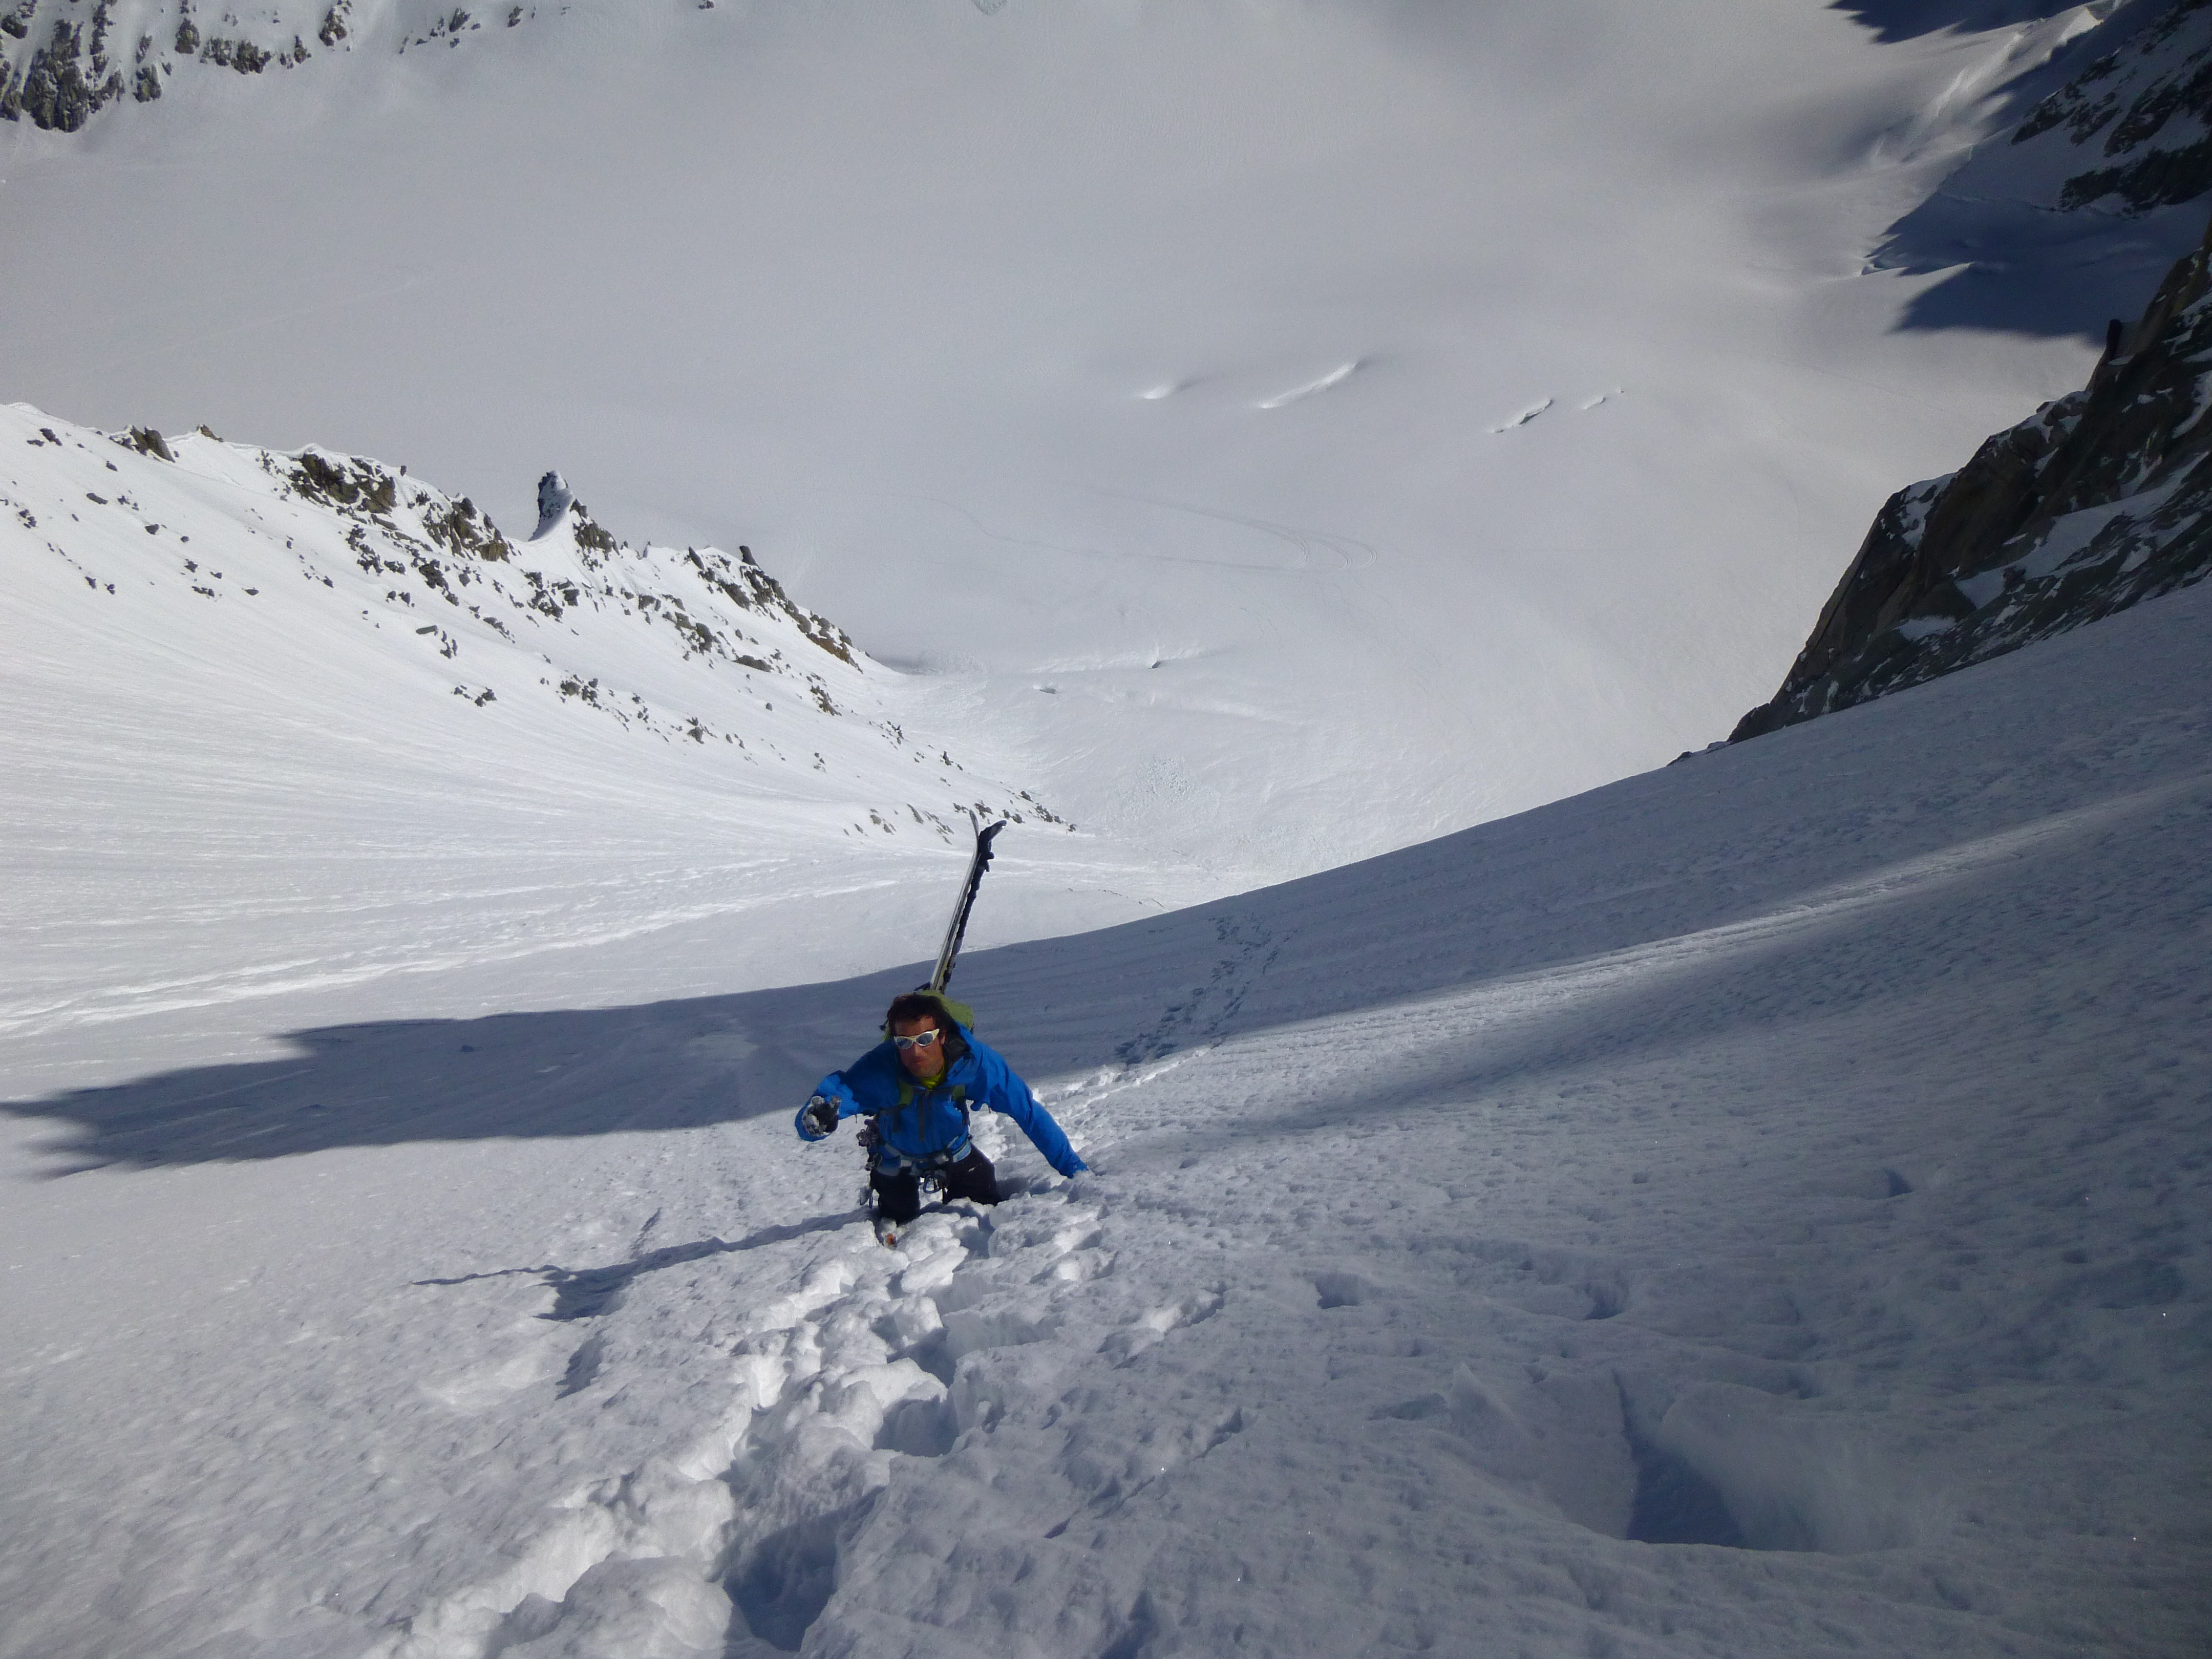 Tomas climbing up to the Col des Cristaux above the Argentiere glacier.